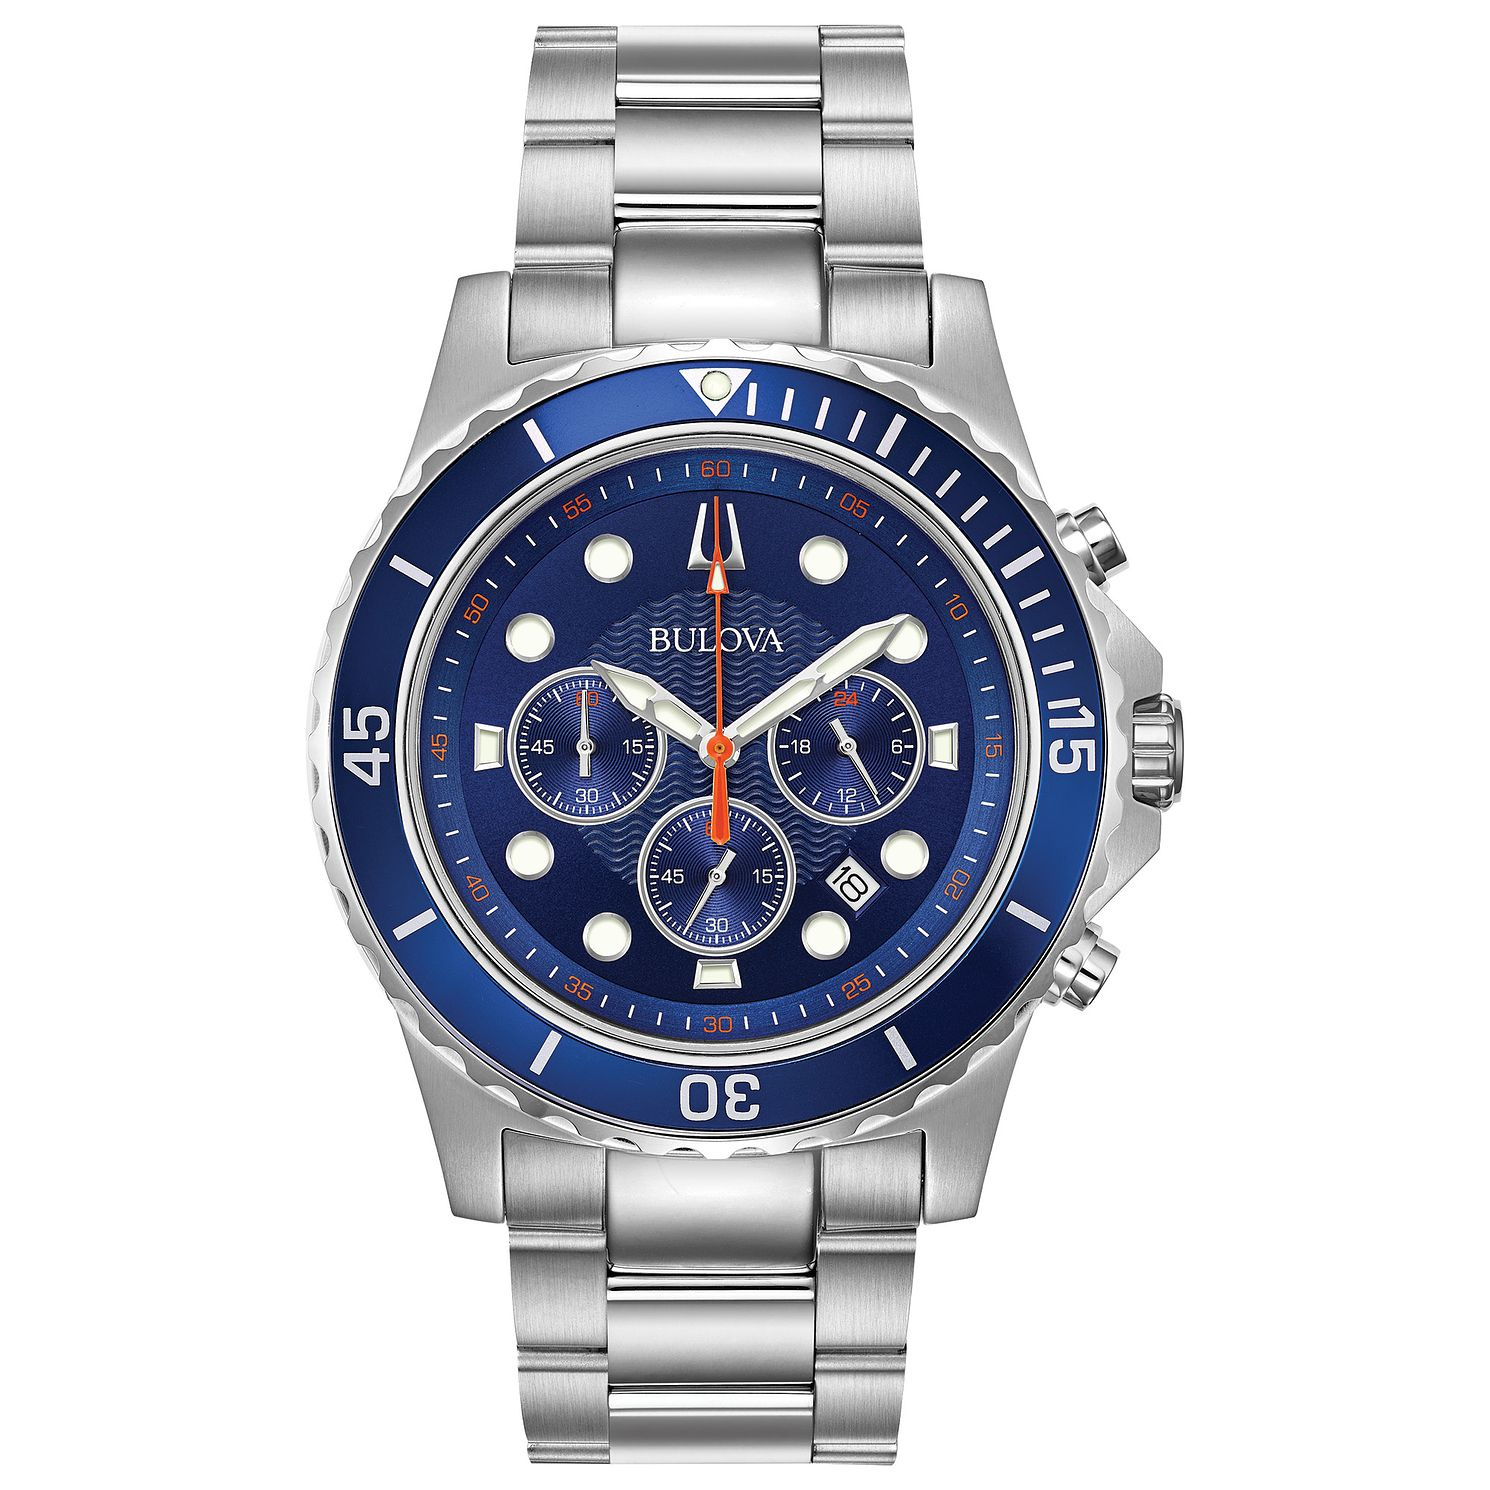 Bulova Men's Classic Blue Dial Bracelet Watch - Product number 9795839